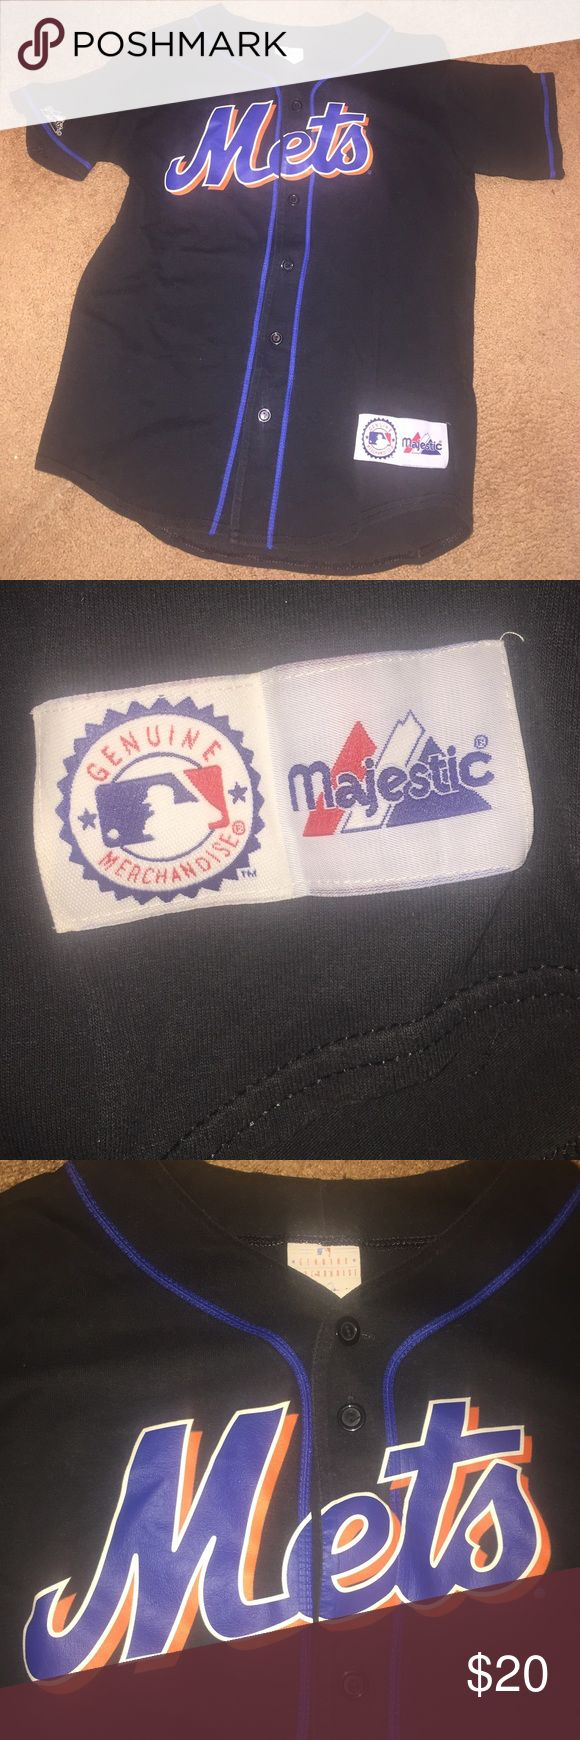 Vintage Majestic Mets Baseball jersey boys L Great condition, classic Mets jersey by Majestic. Boys size L (14-16) Majestic Shirts & Tops